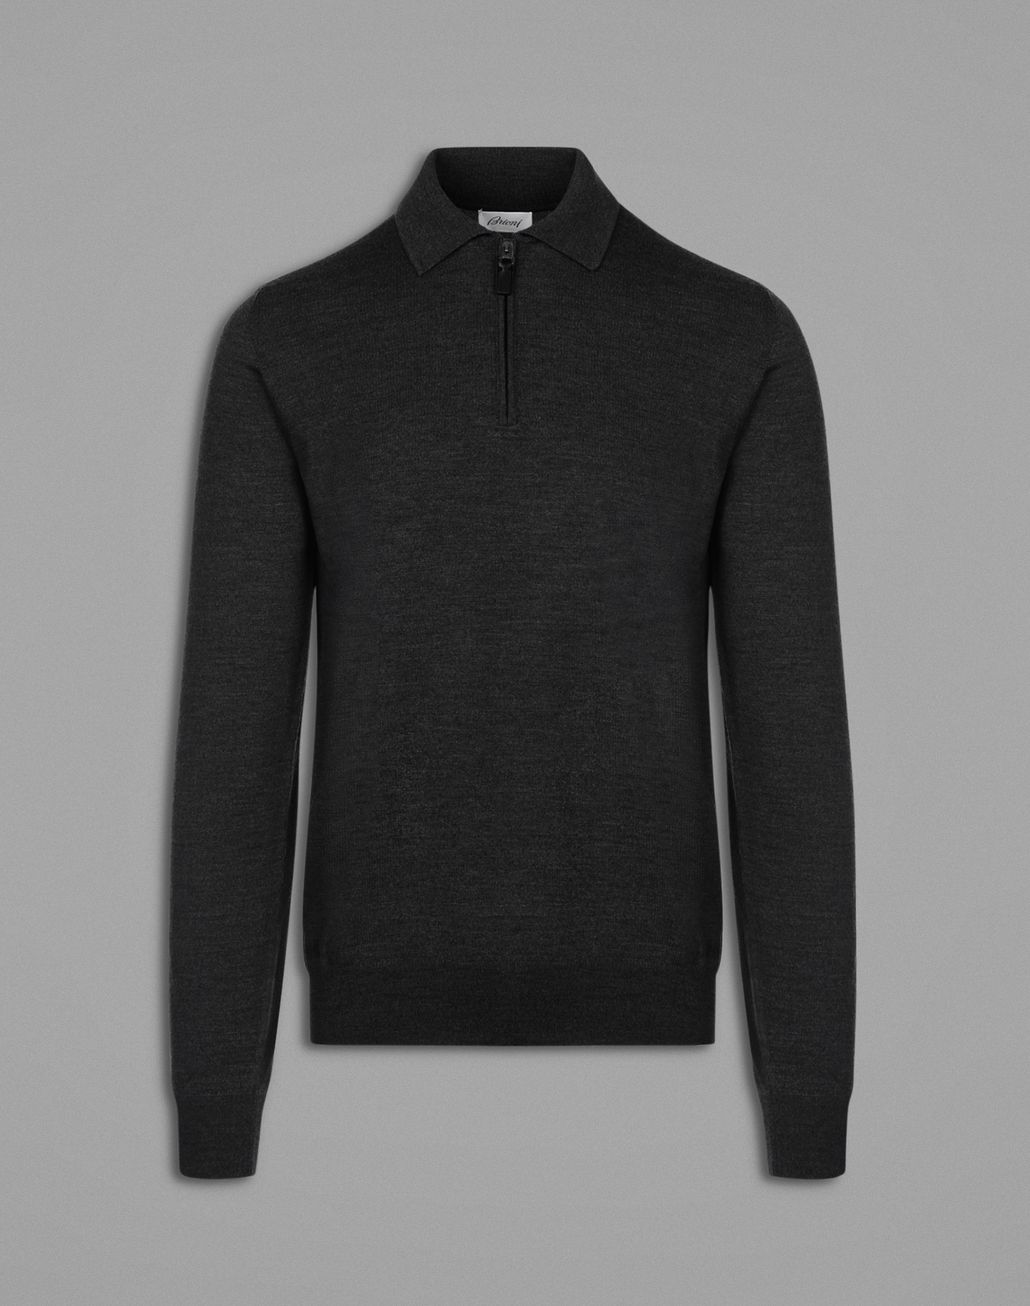 BRIONI Black Long-Sleeved Polo Shirt. Knitwear Man f